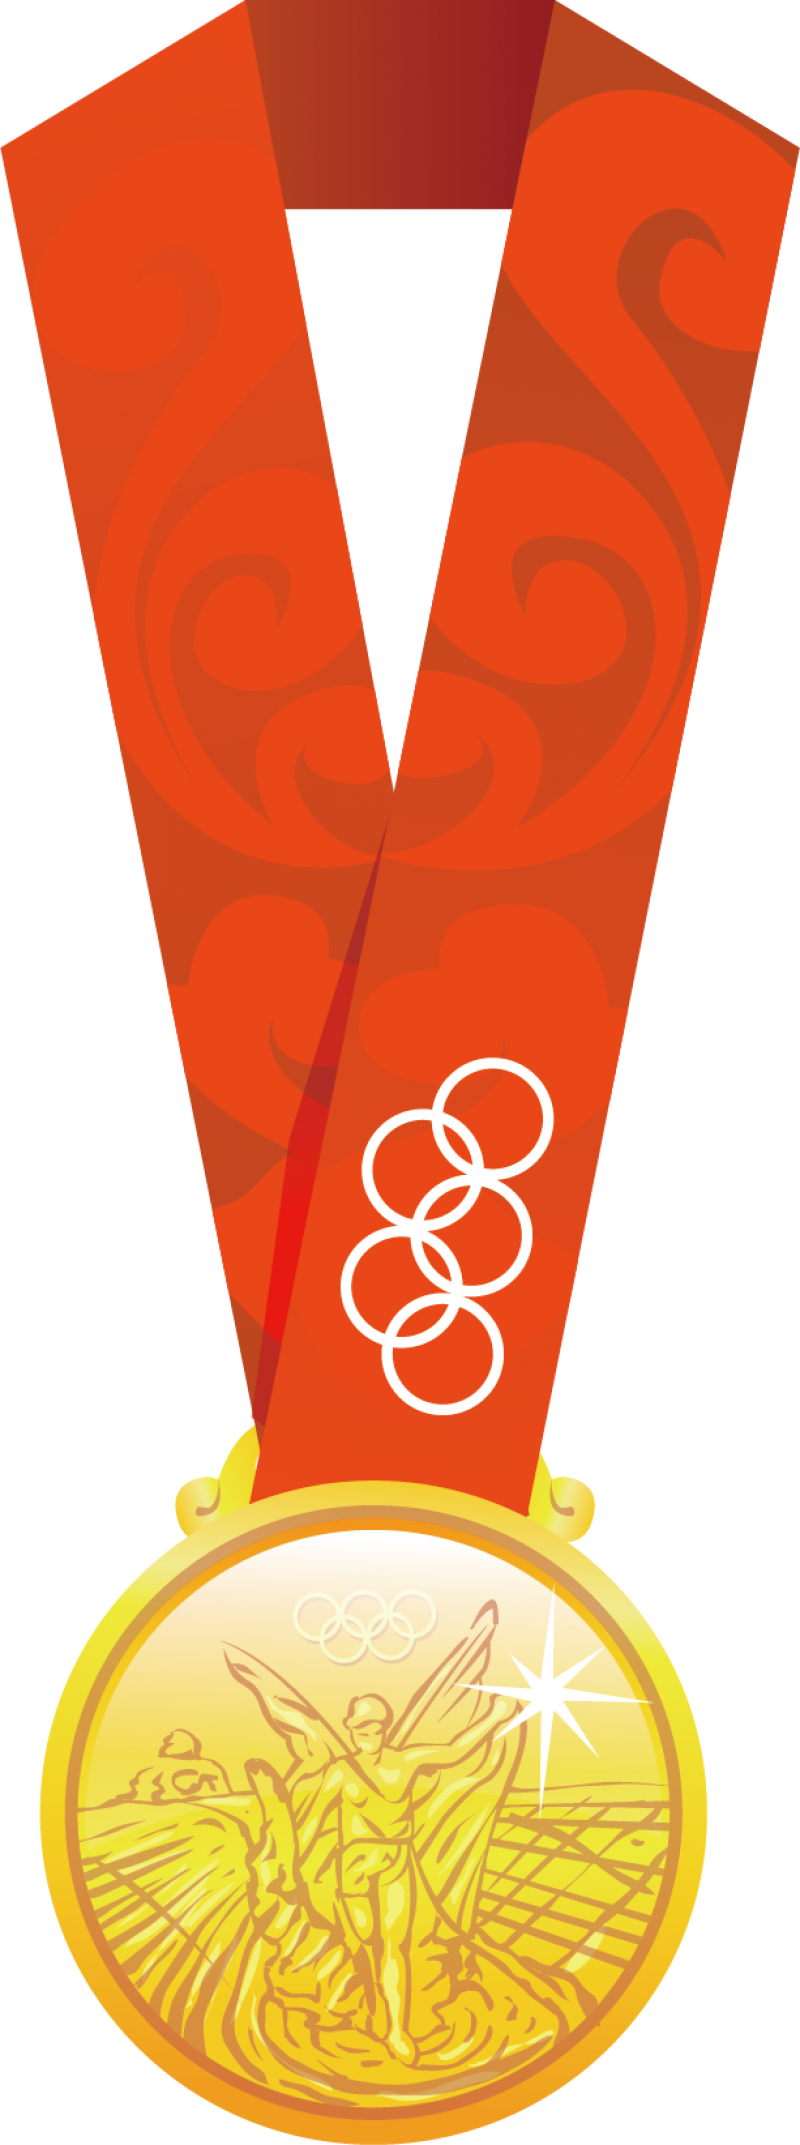 Olympic Gold Medal PNG Image